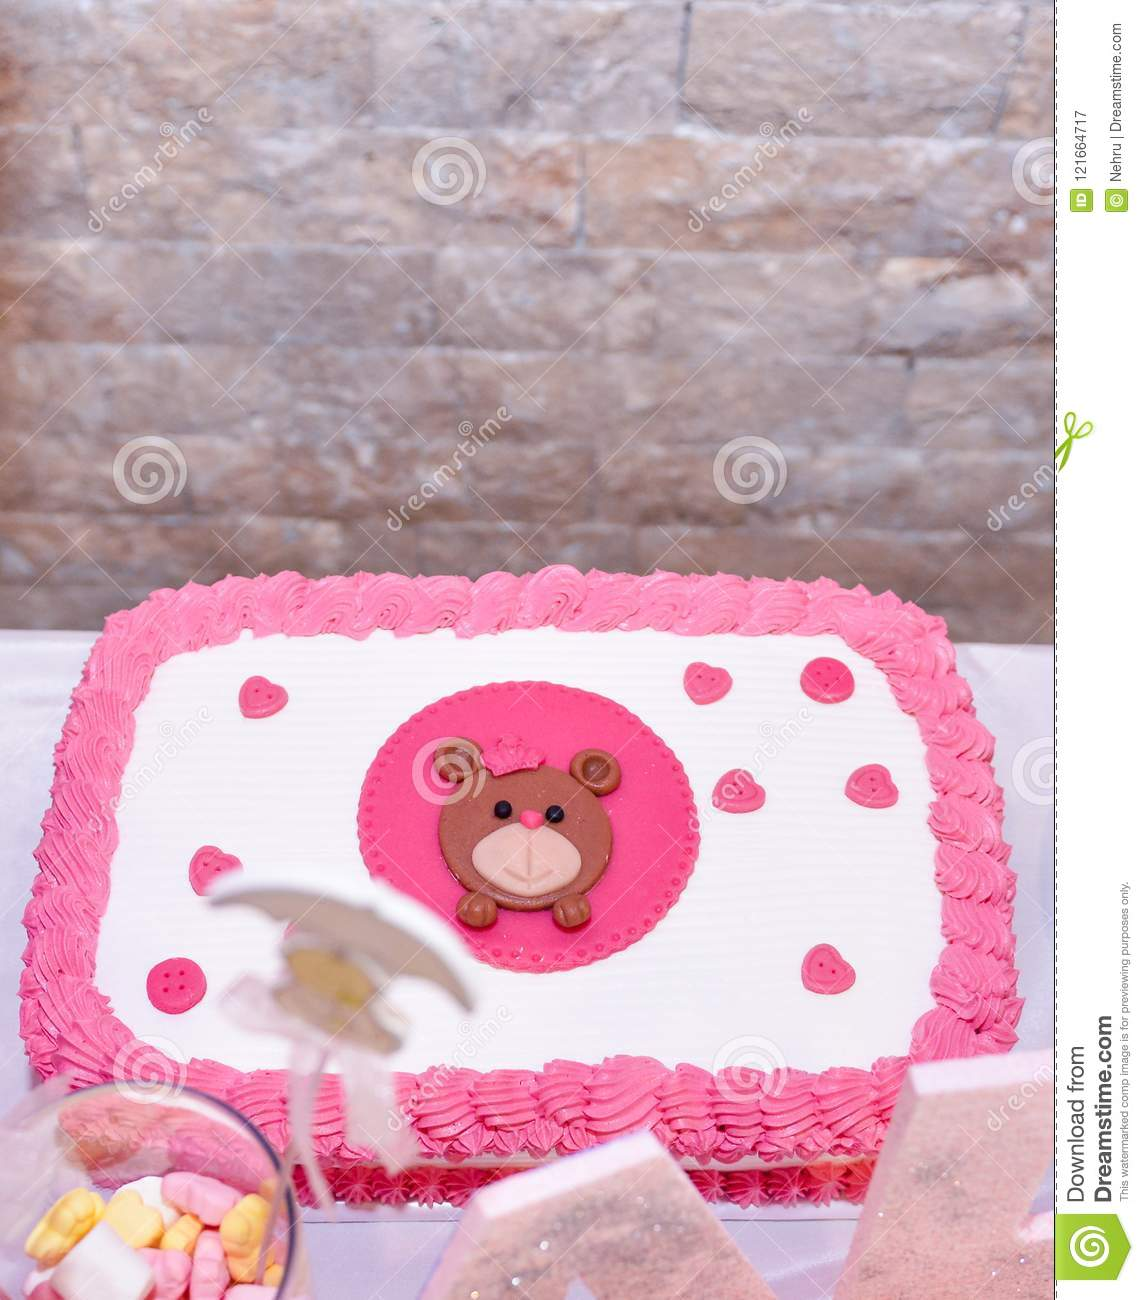 baby girl first birthday cake with teddy bear stock image image of